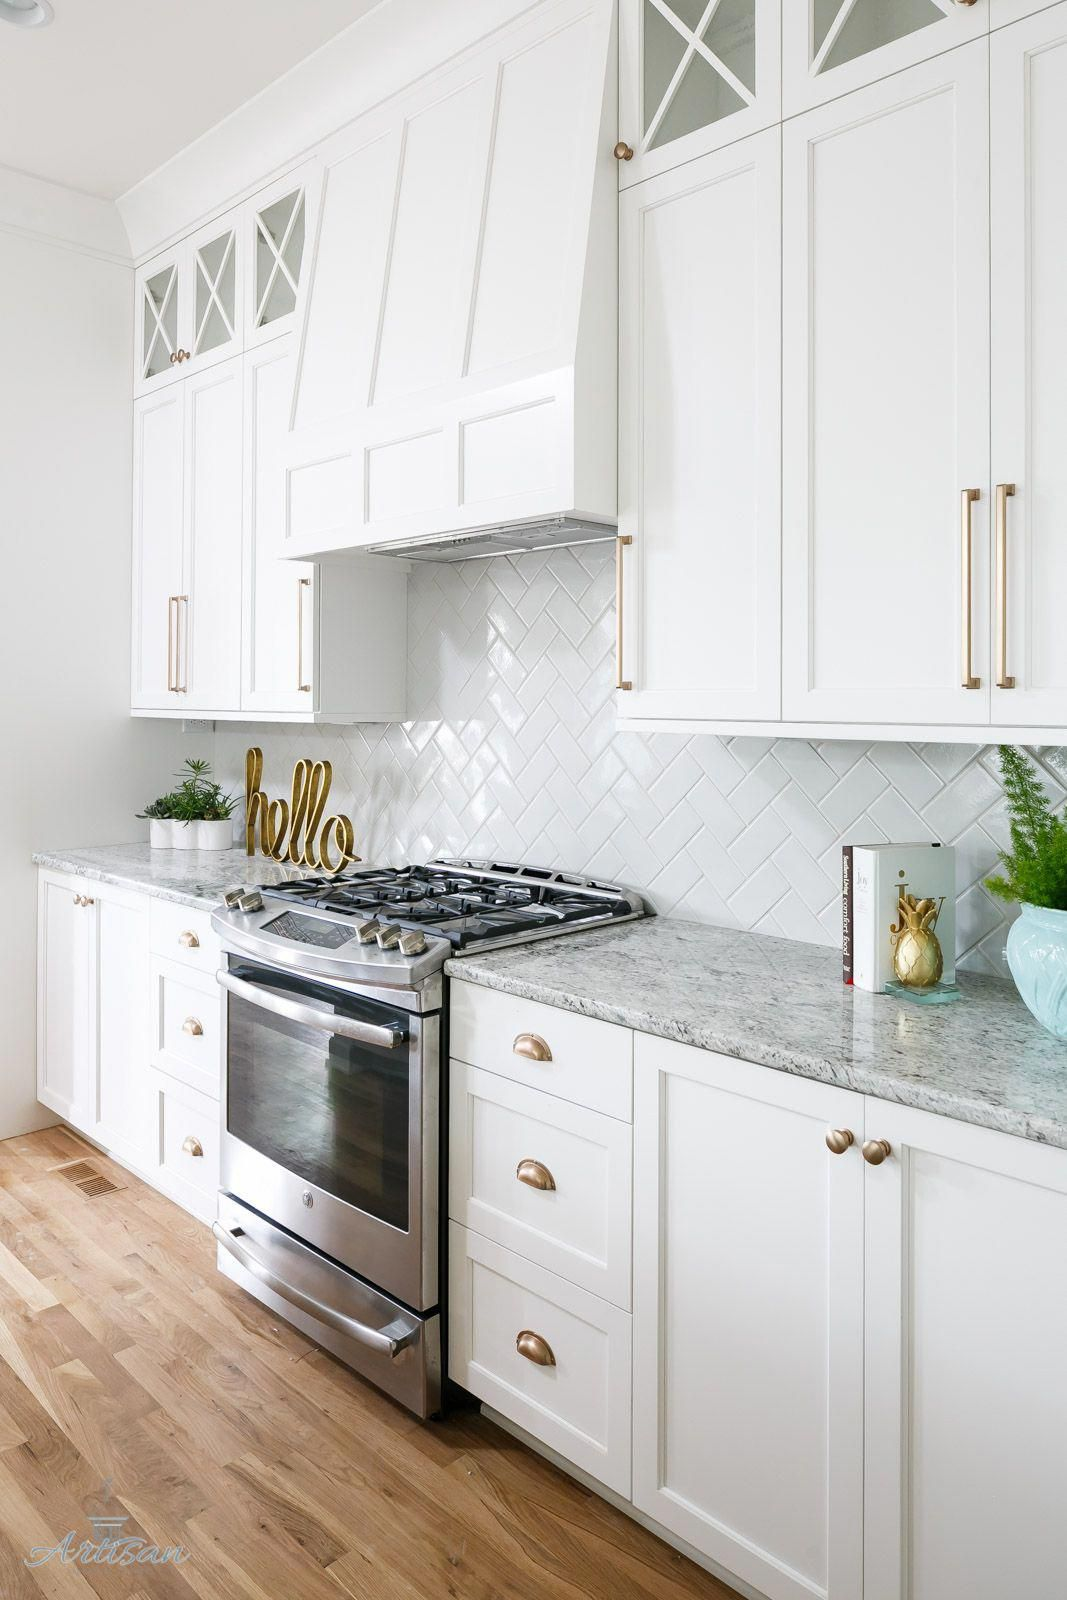 White Kitchen Design With Marble Countertops And Gold Accents Artisan Signature Homes Greykitchen In 2020 Kitchen Cabinet Design Kitchen Design Kitchen Remodel